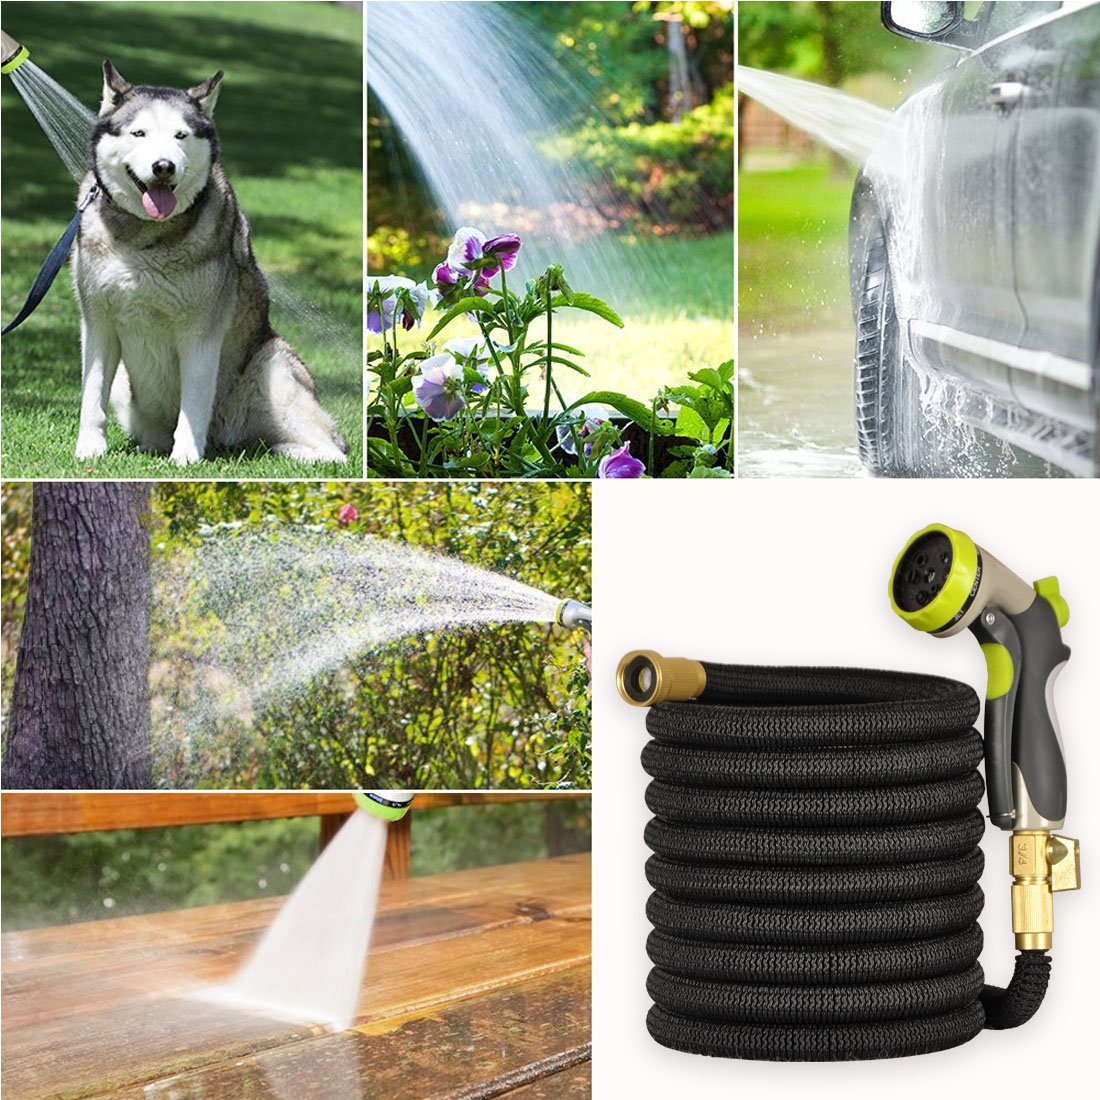 Expandable Garden Hose 50 ft Water Hose 8 Pattern Spray And High Pressure Spray Nozzle For Car, Garden, Lawn, Pet Shower, Plant Watering Hose